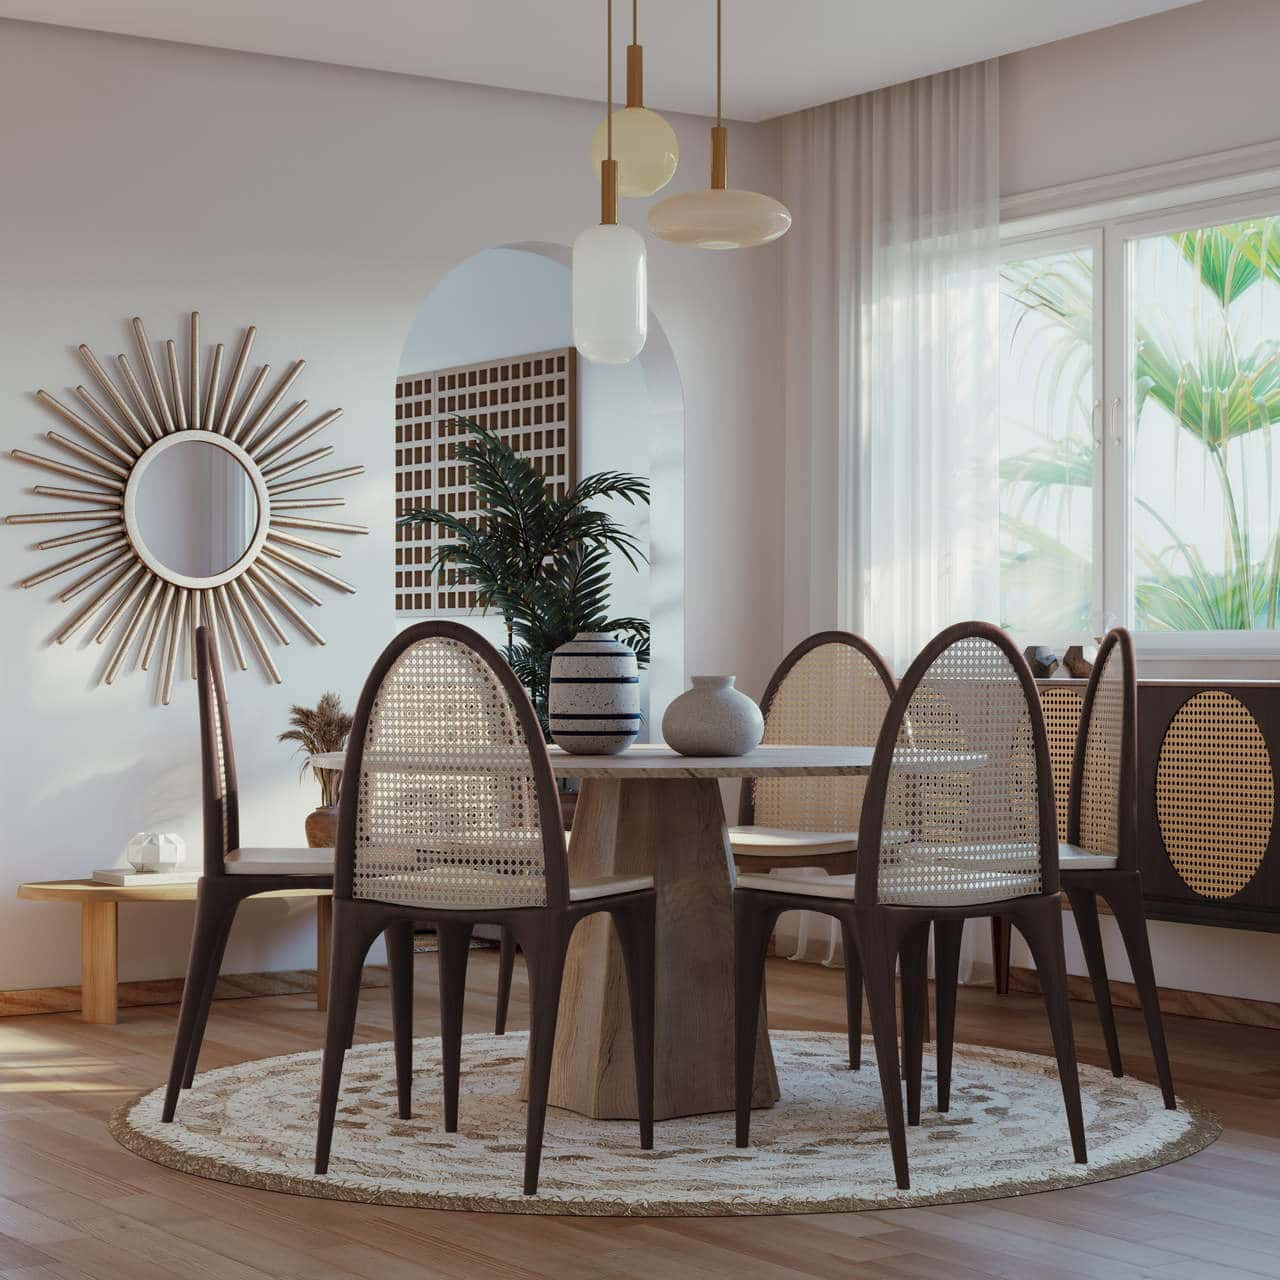 Cove Dining Room